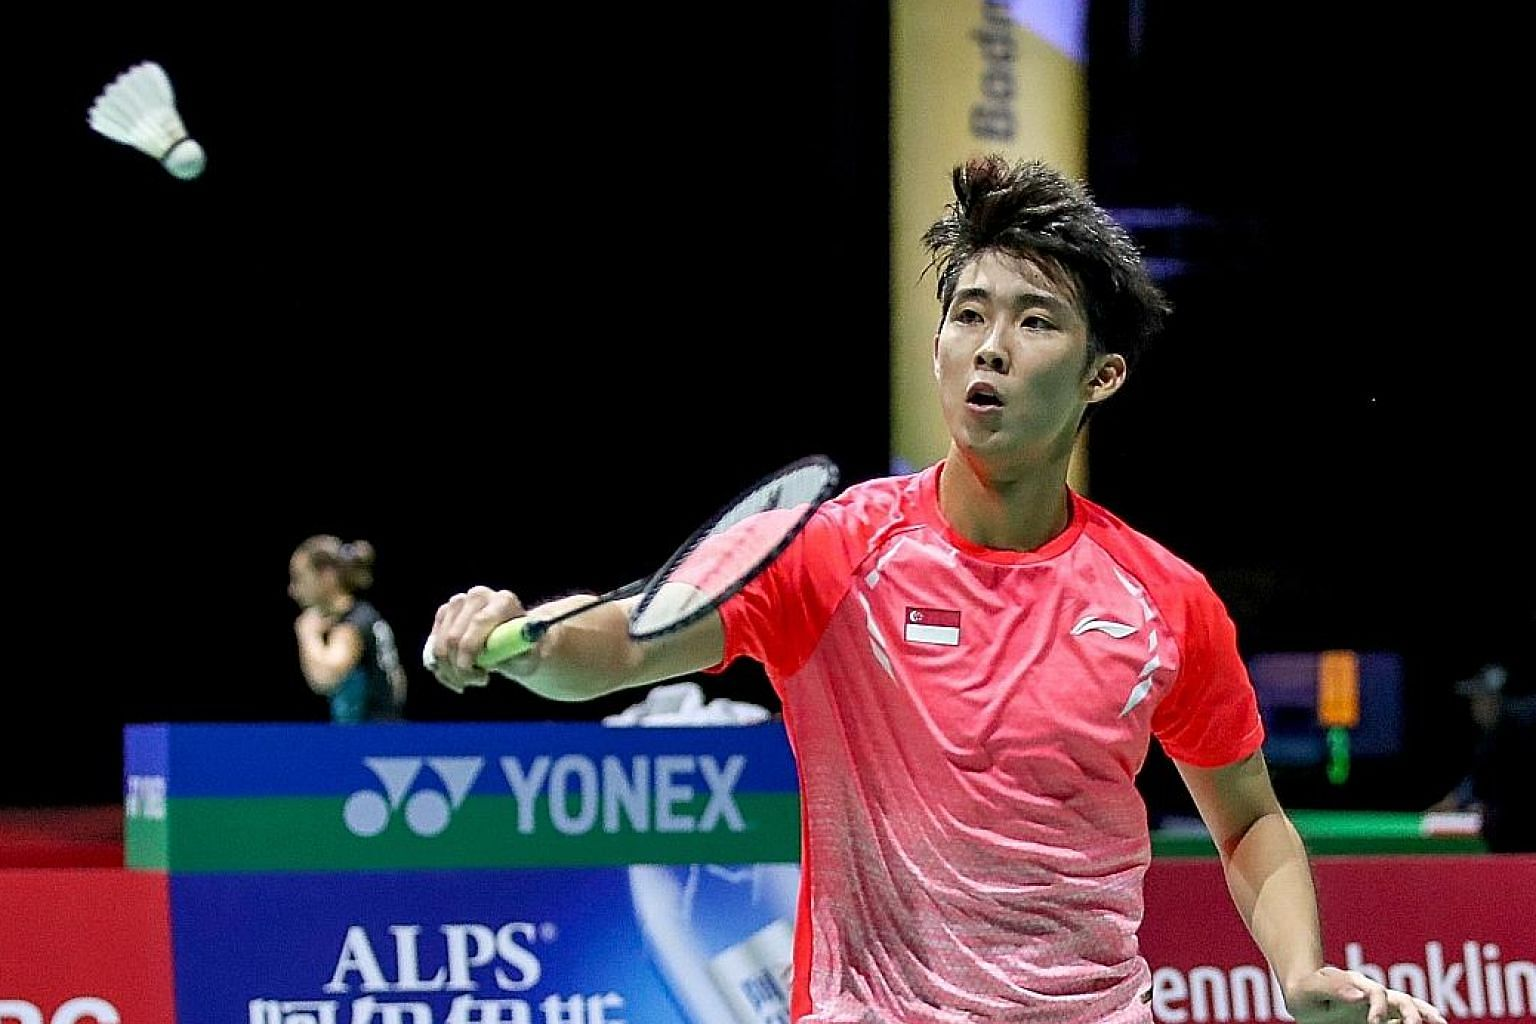 Singapore shuttler Loh Kean Yew hitting a backhand return en route to beating Thomas Rouxel in the second round of the World Championships yesterday. Loh will next face second seed Chou Tien-chen in Basel, Switzerland. PHOTO: BADMINTONPHOTO